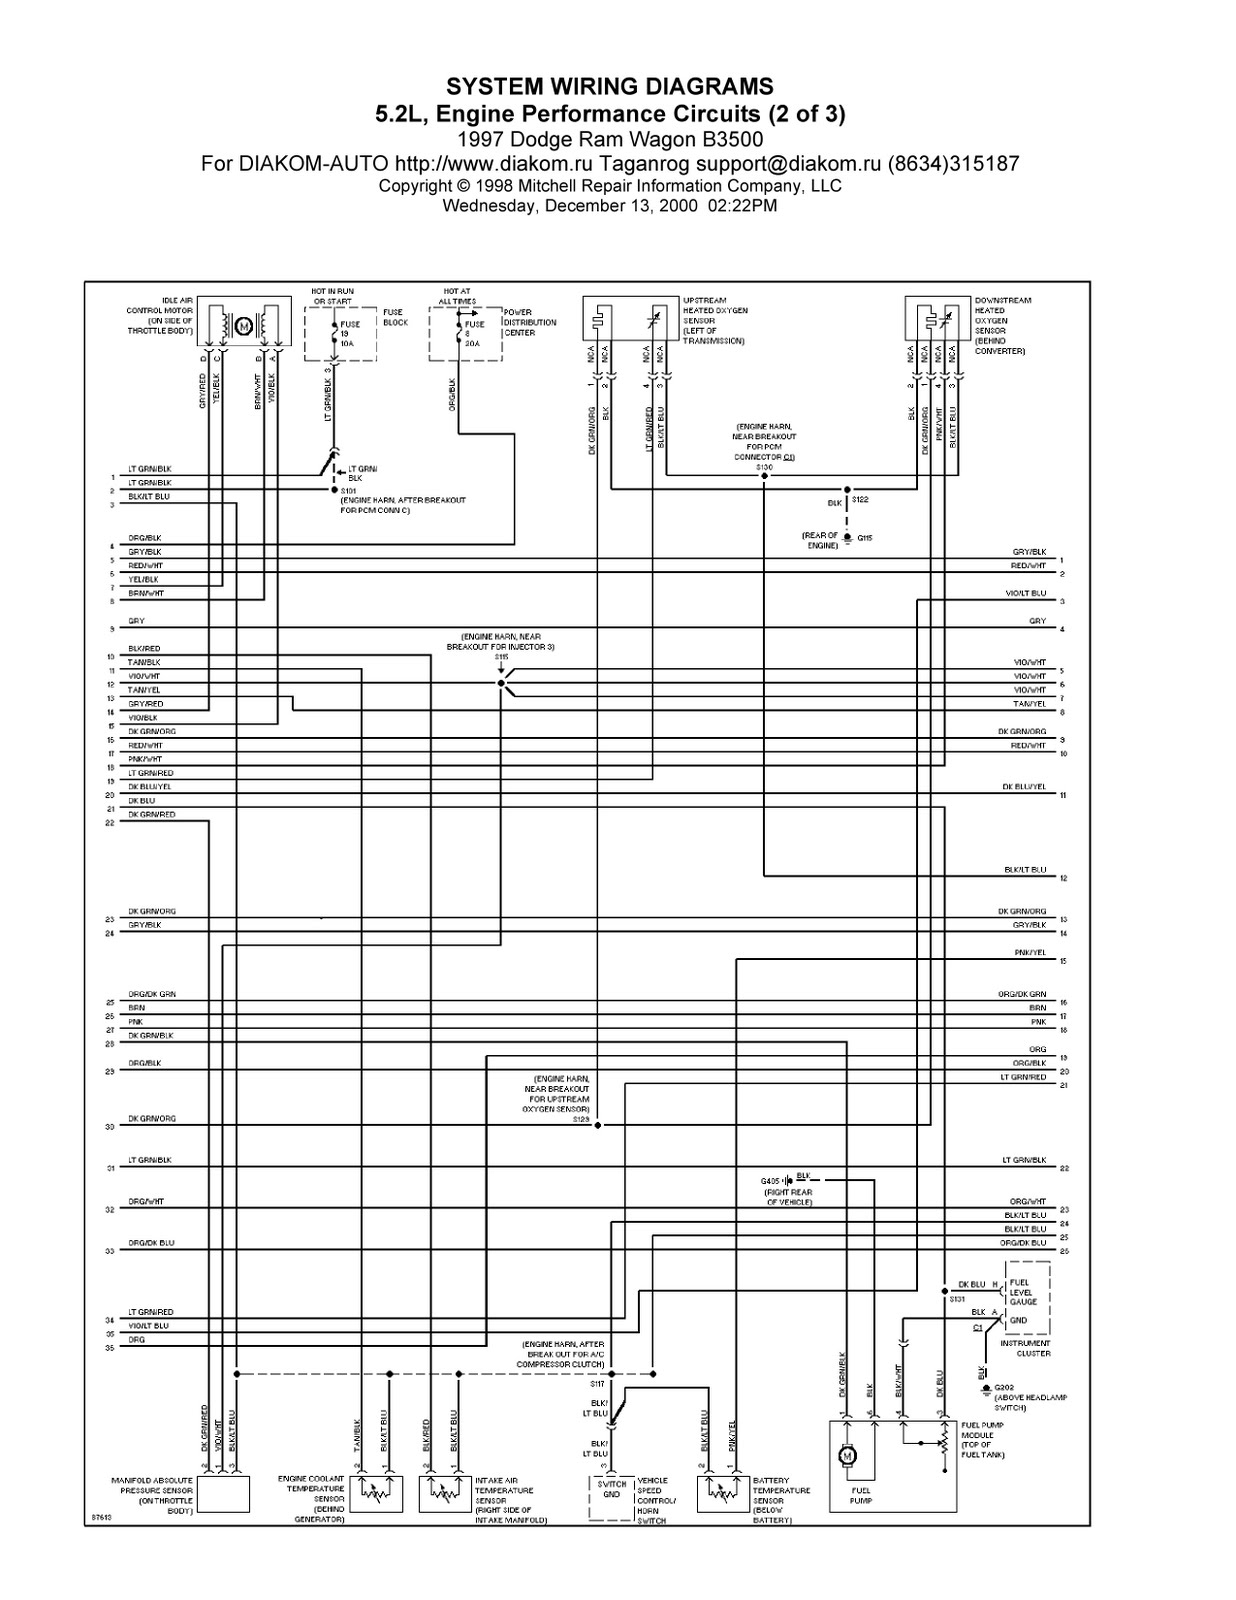 1997 Dodge Ram 1500 Engine Wiring Harness : Dodge ram wagon b system wiring diagram l